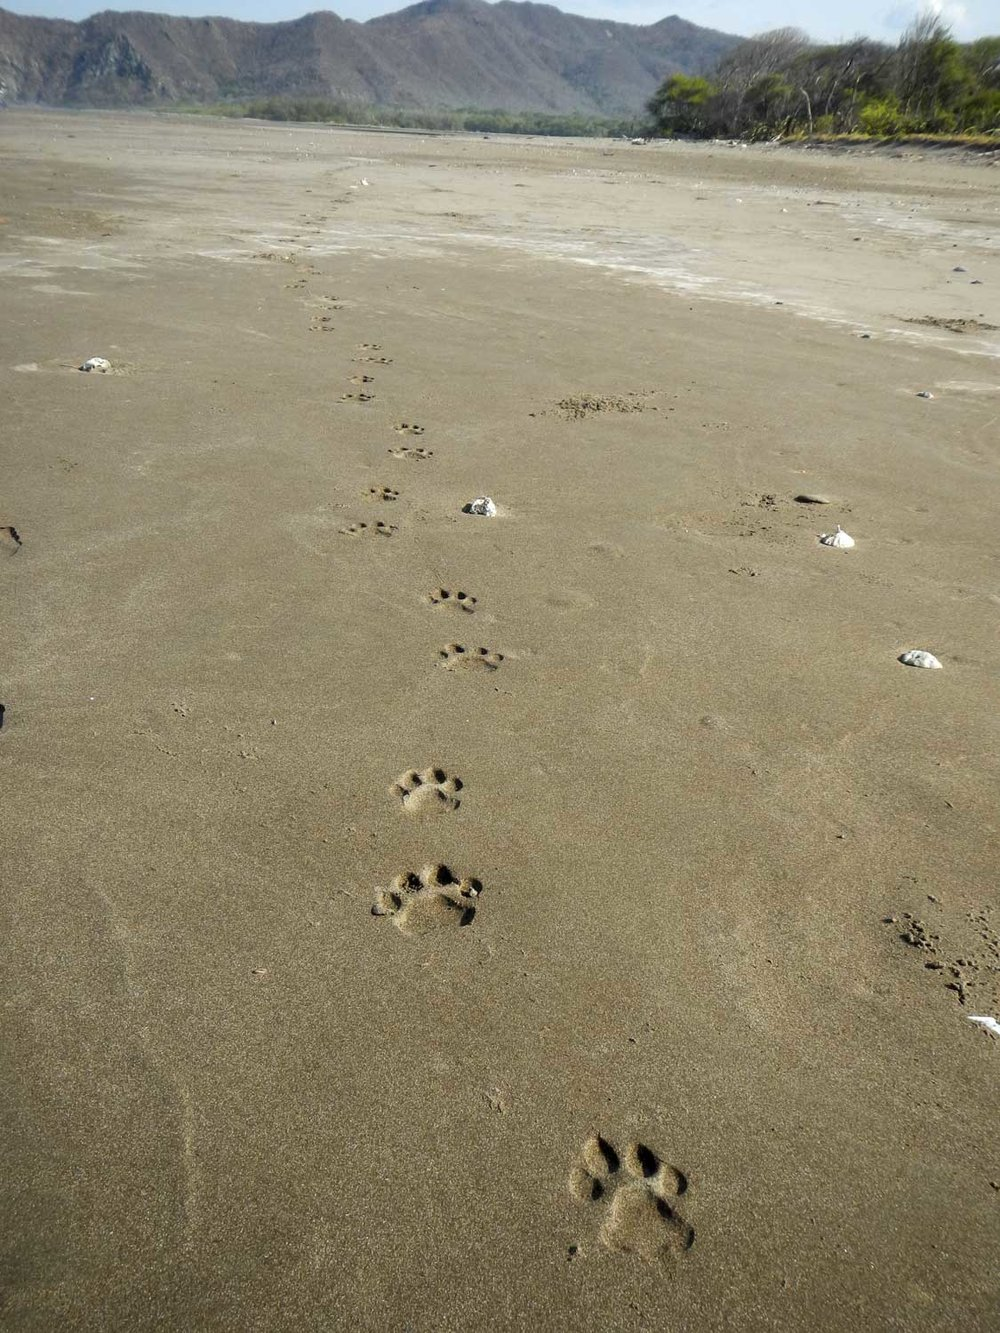 Fresh jaguar tracks on the beach